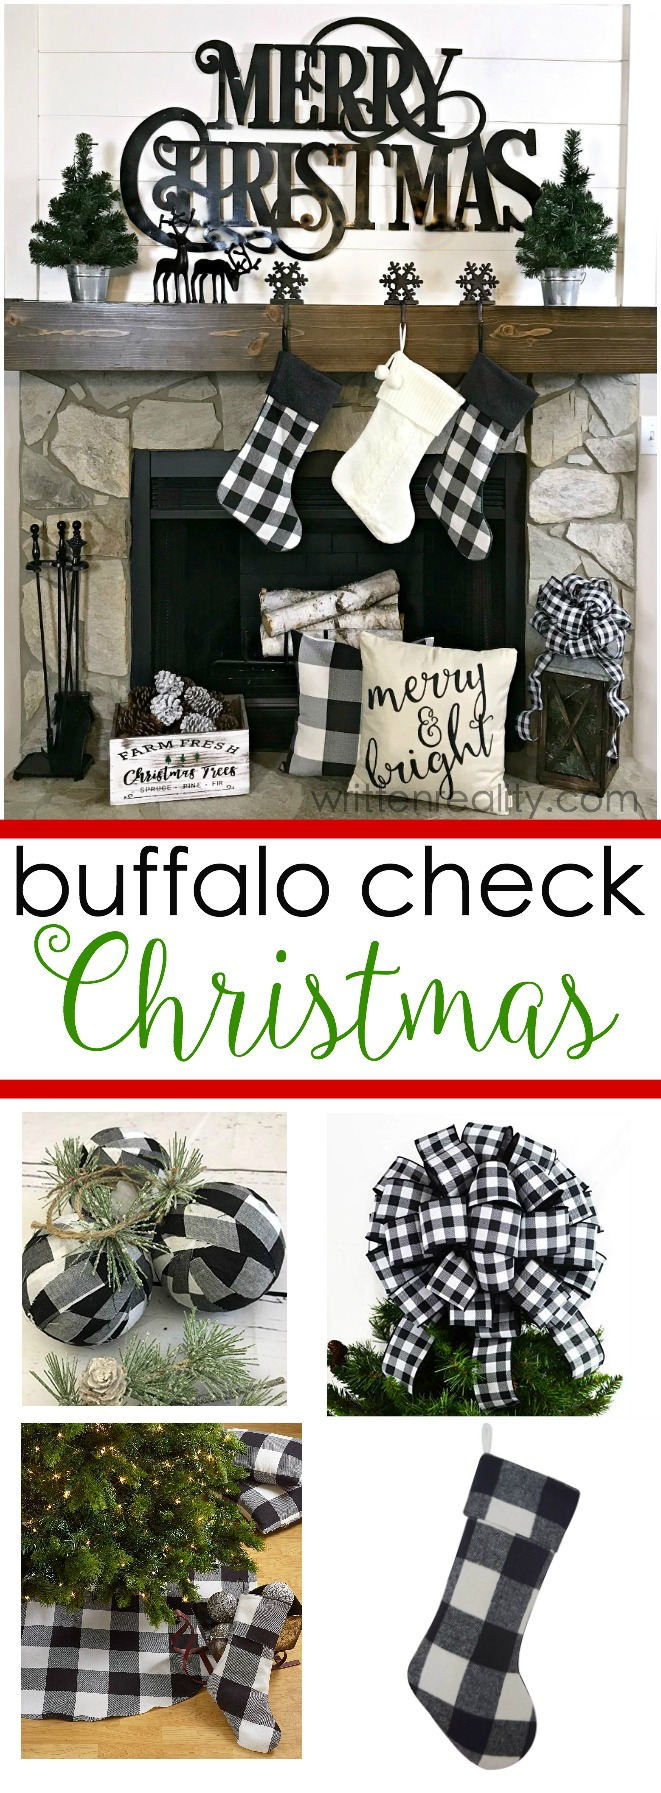 buffalo check christmas decorations